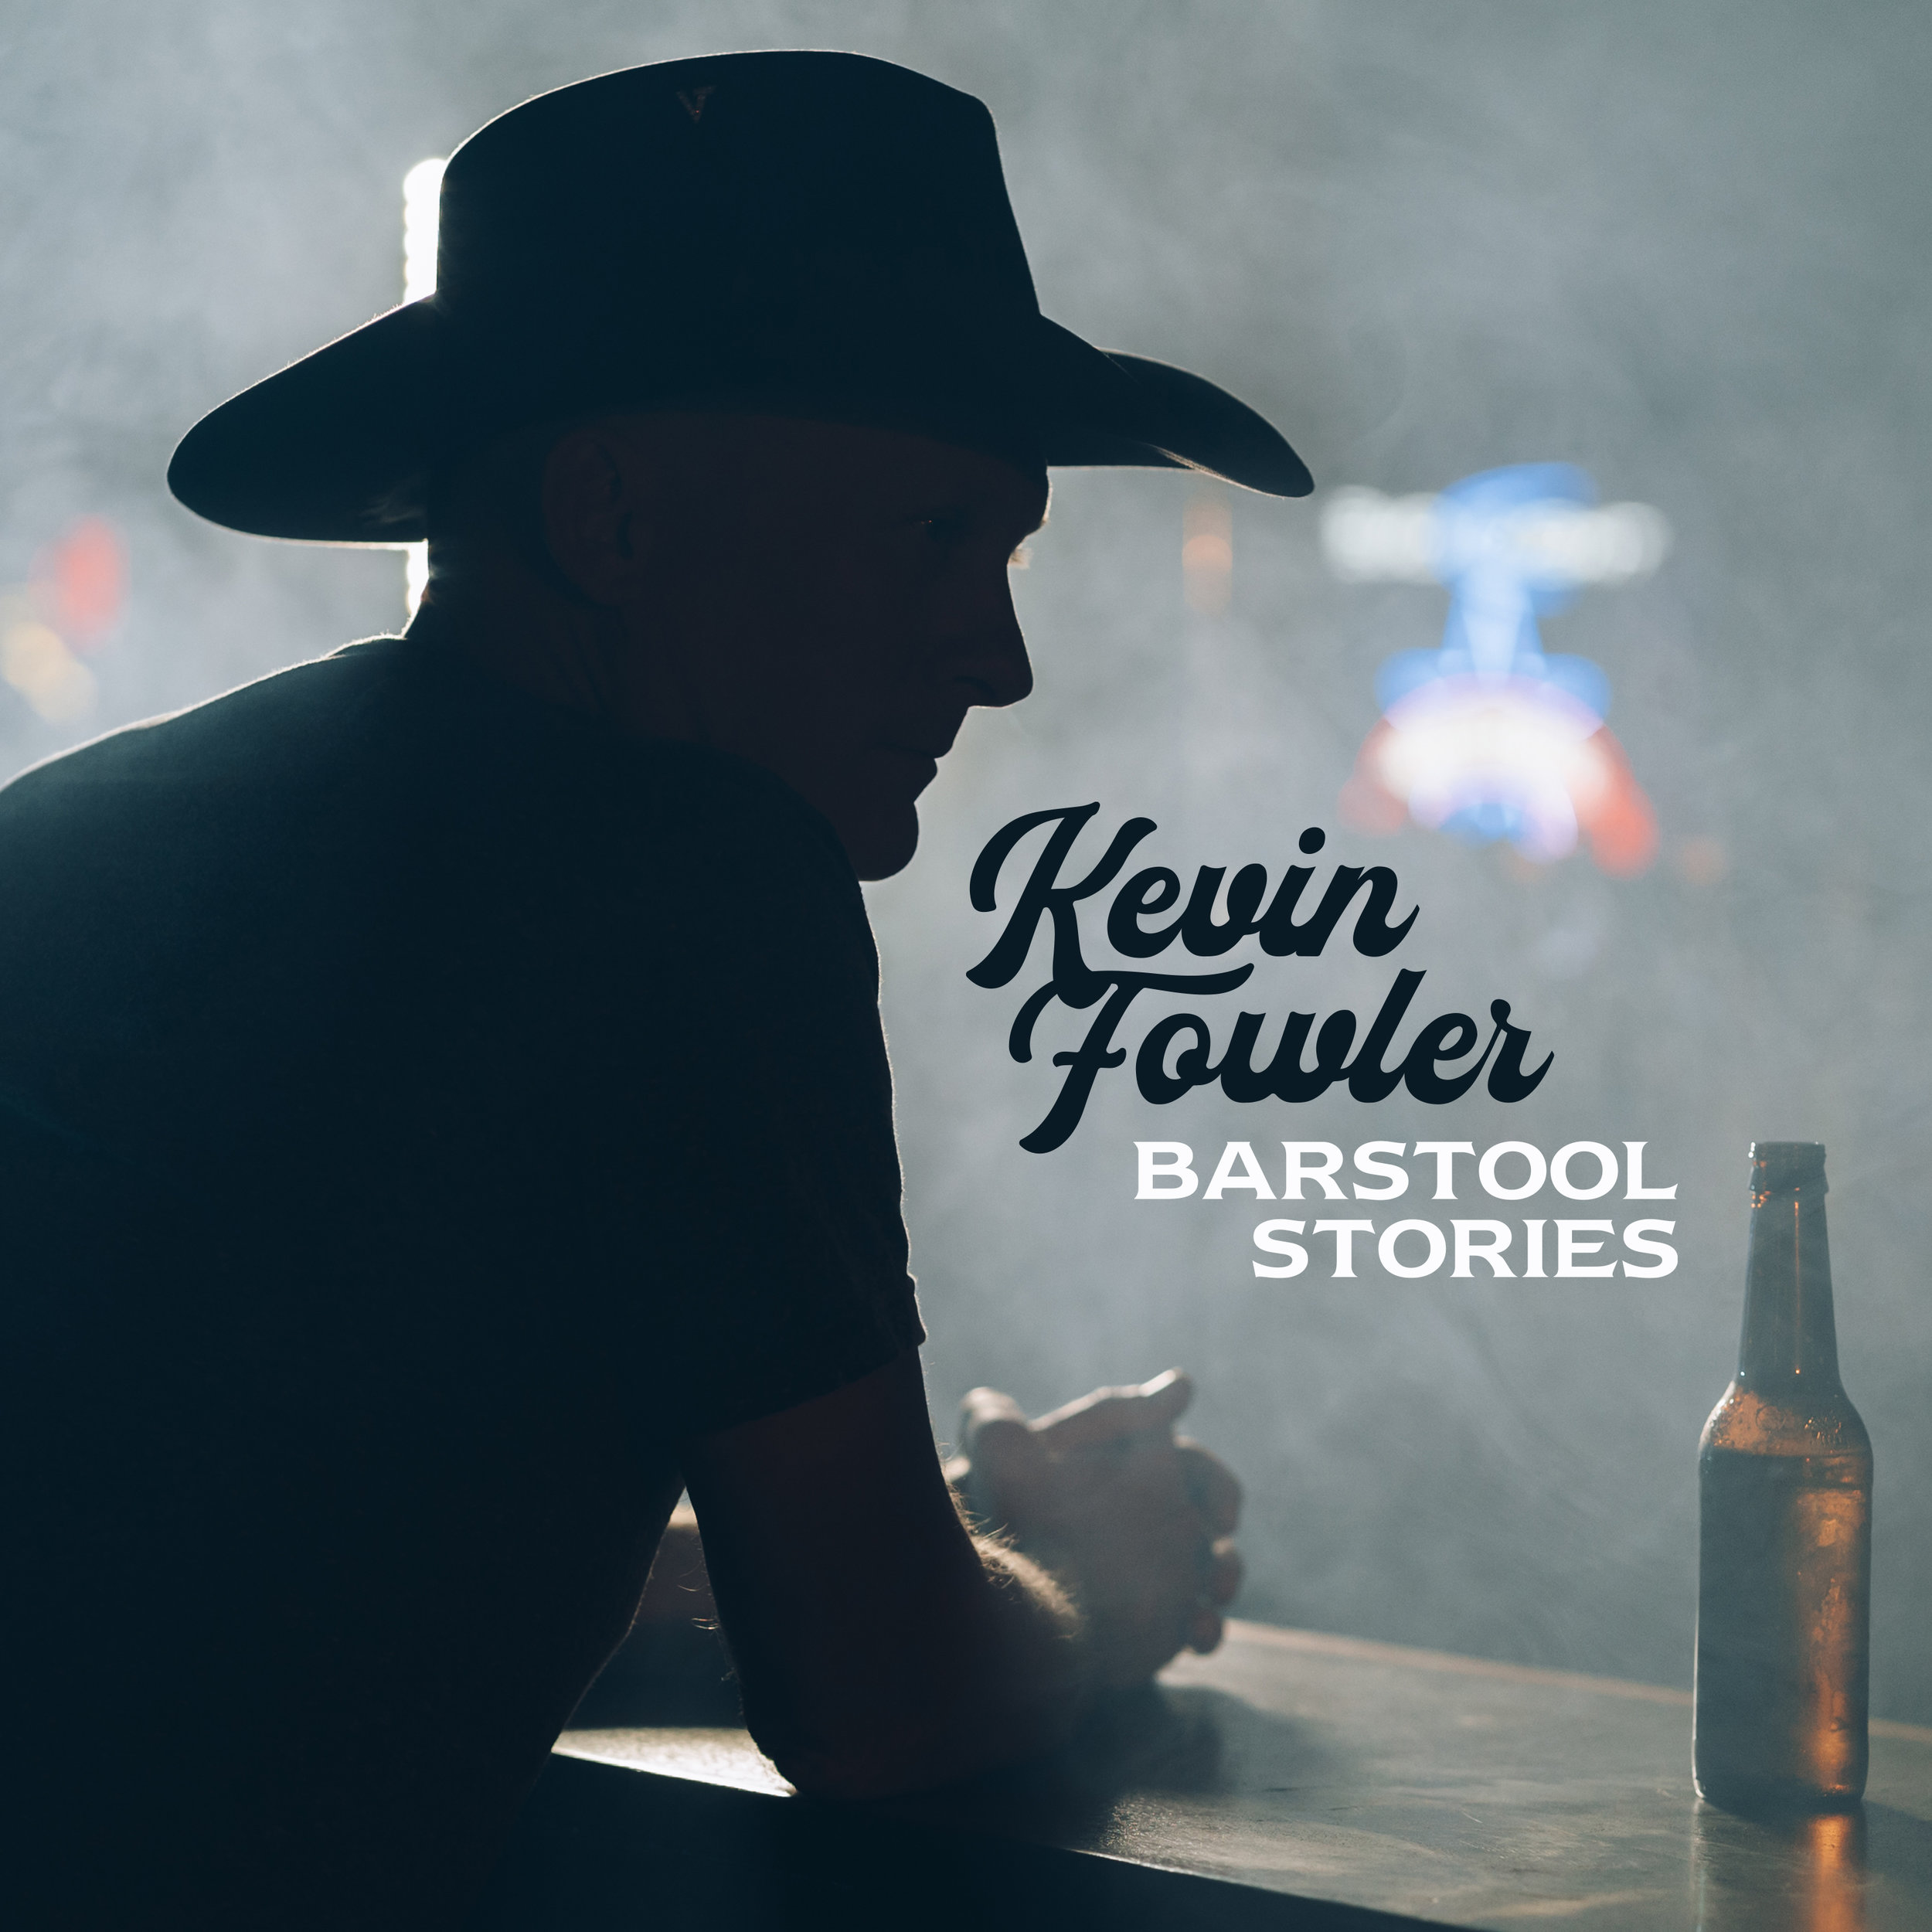 'Barstool Stories' out now! - Stream, share, and buy the album here.